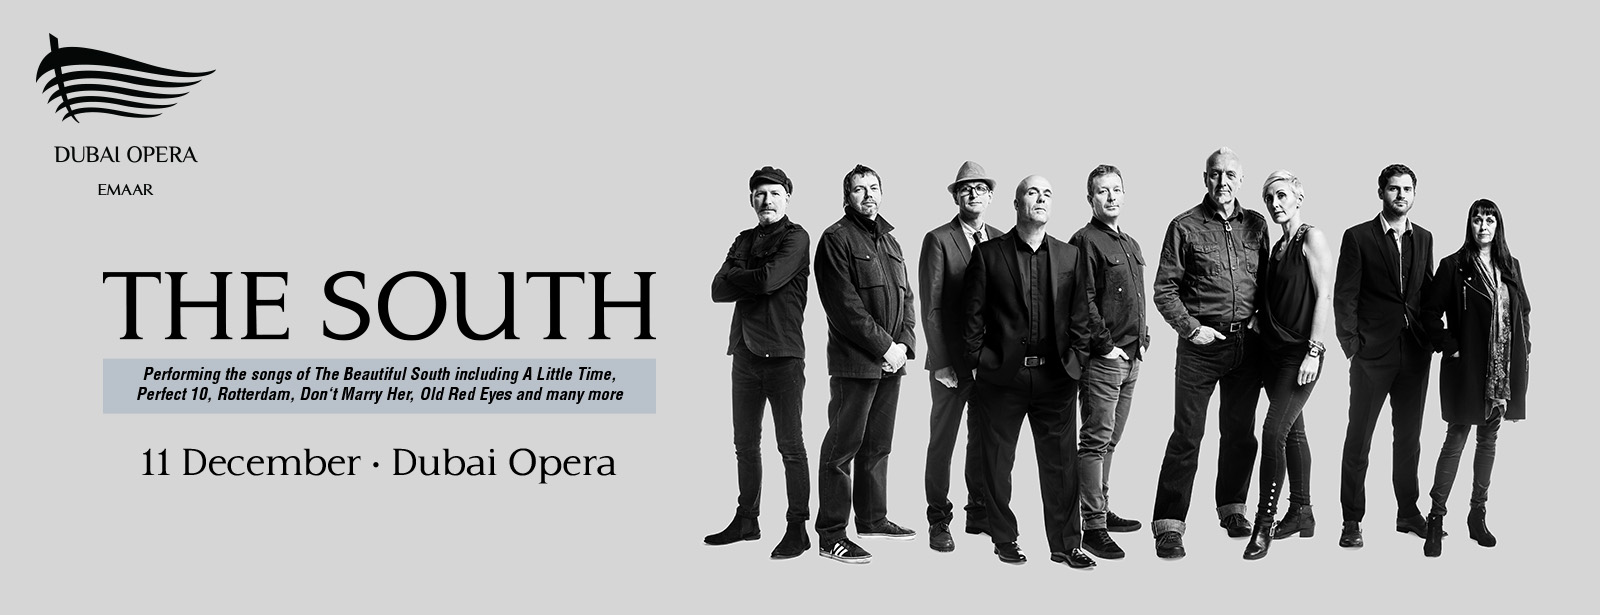 The South at Dubai Opera 2019